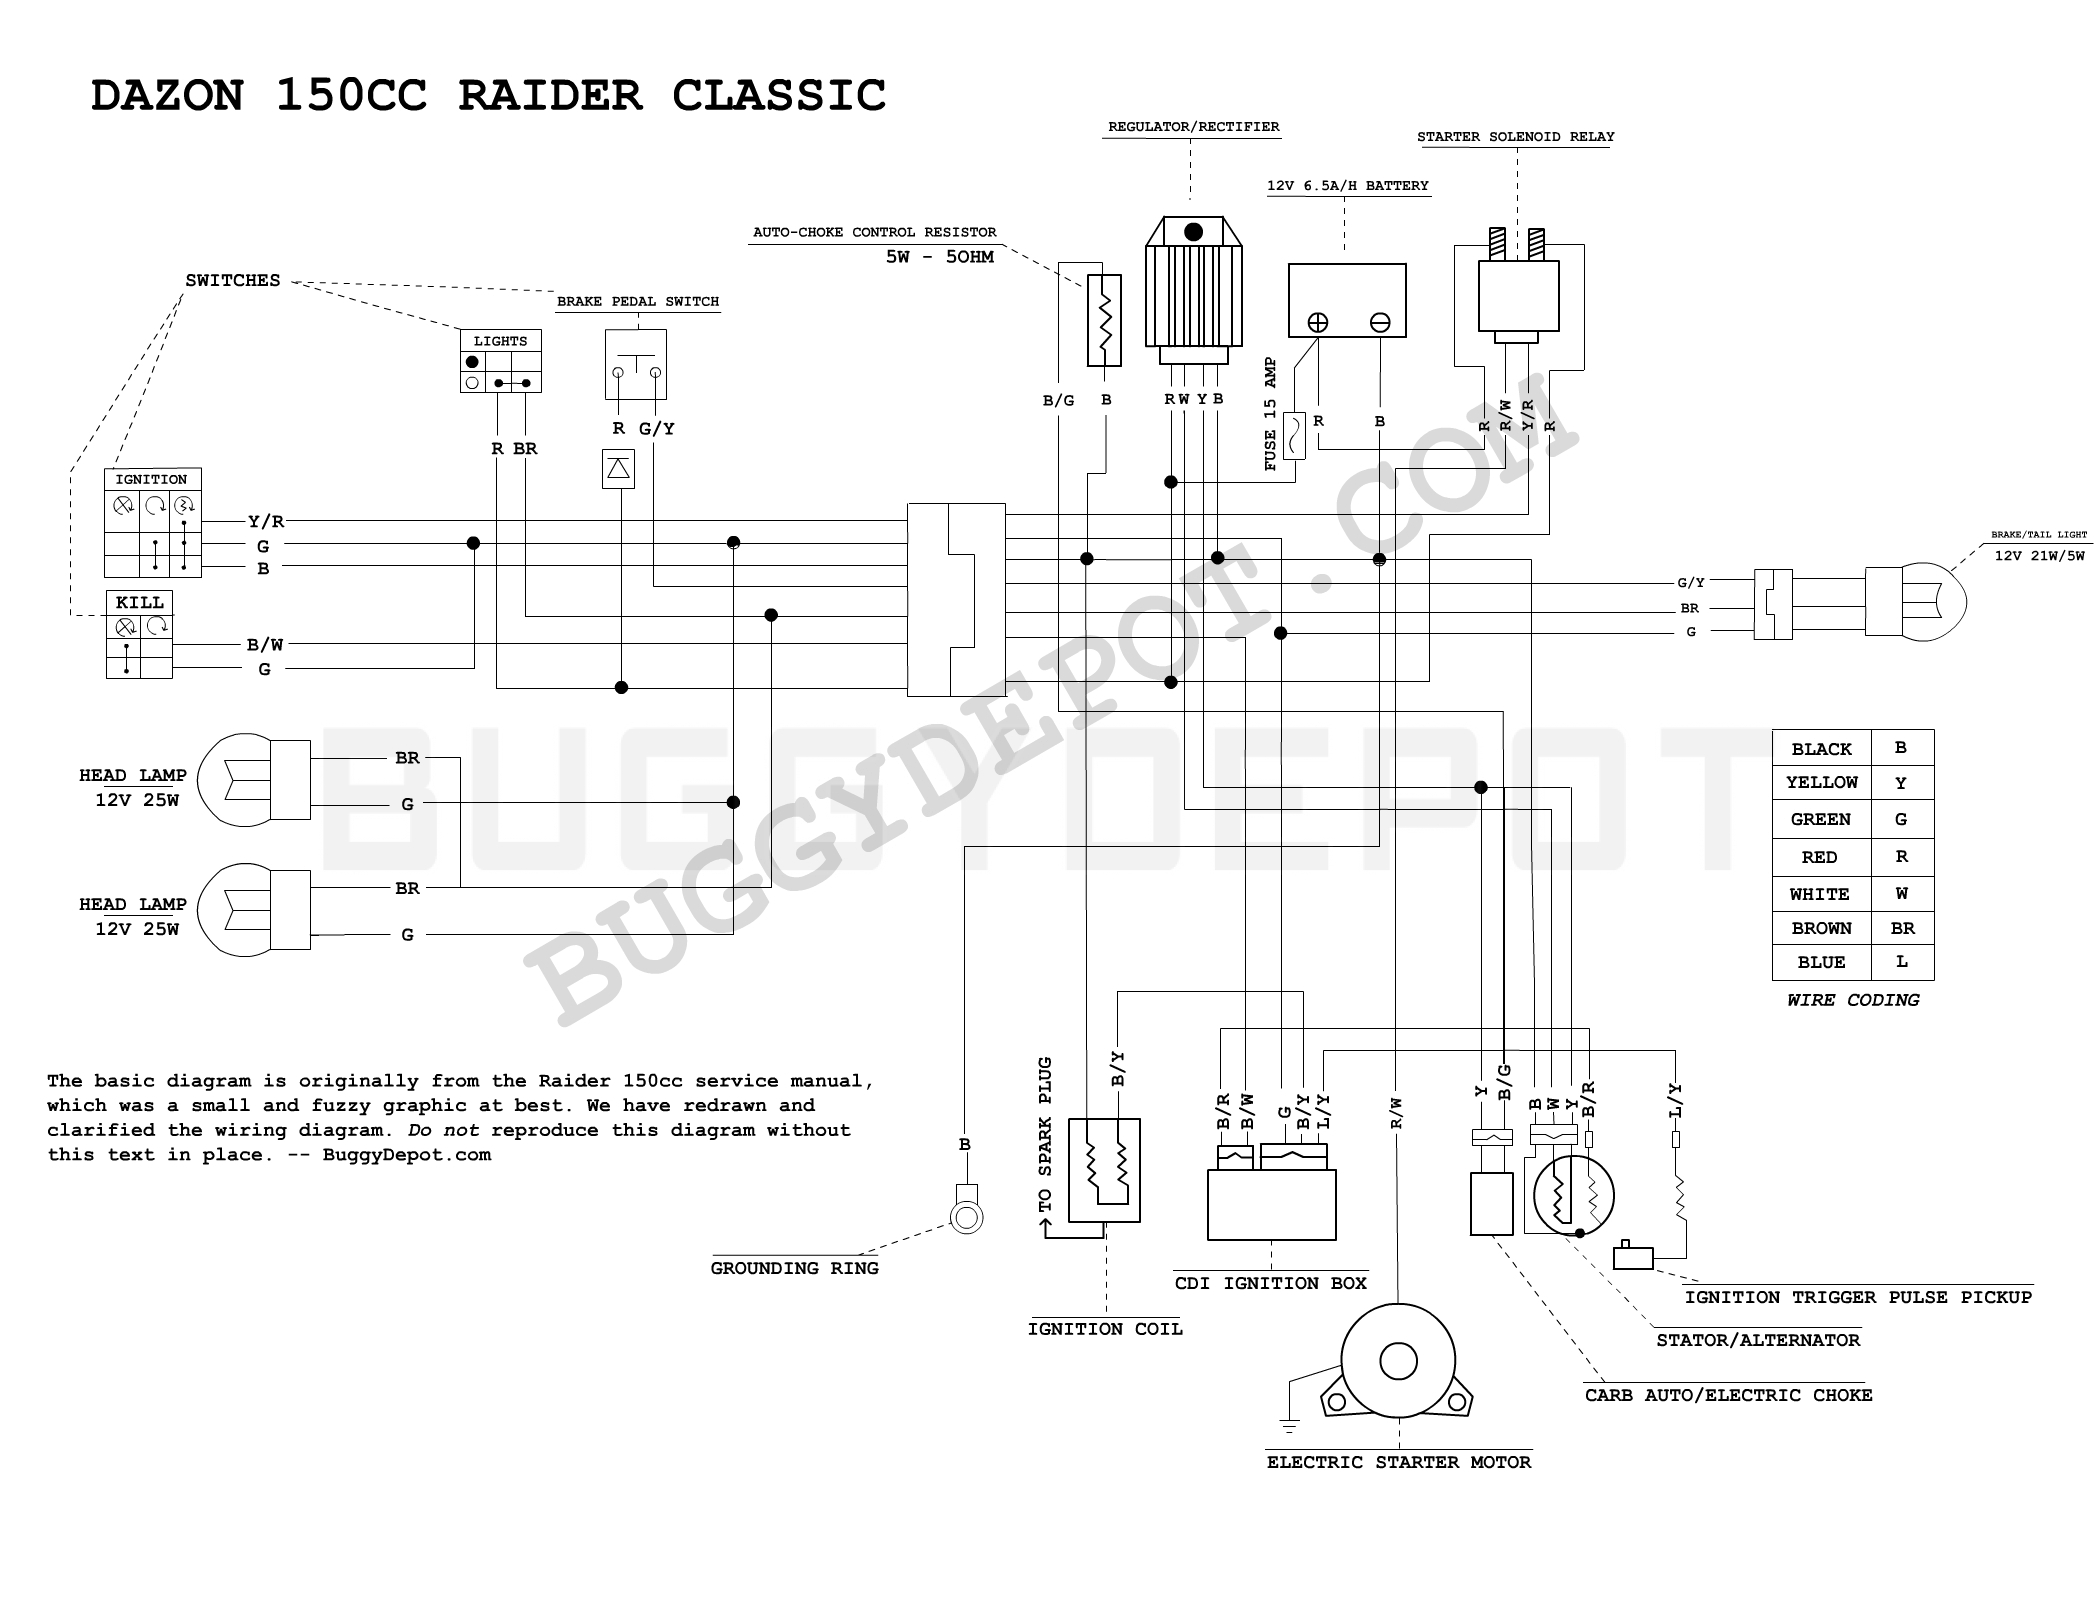 article_33_1278205207 dazon raider classic wiring diagram buggy depot technical center chinese atv stator wiring diagram at fashall.co